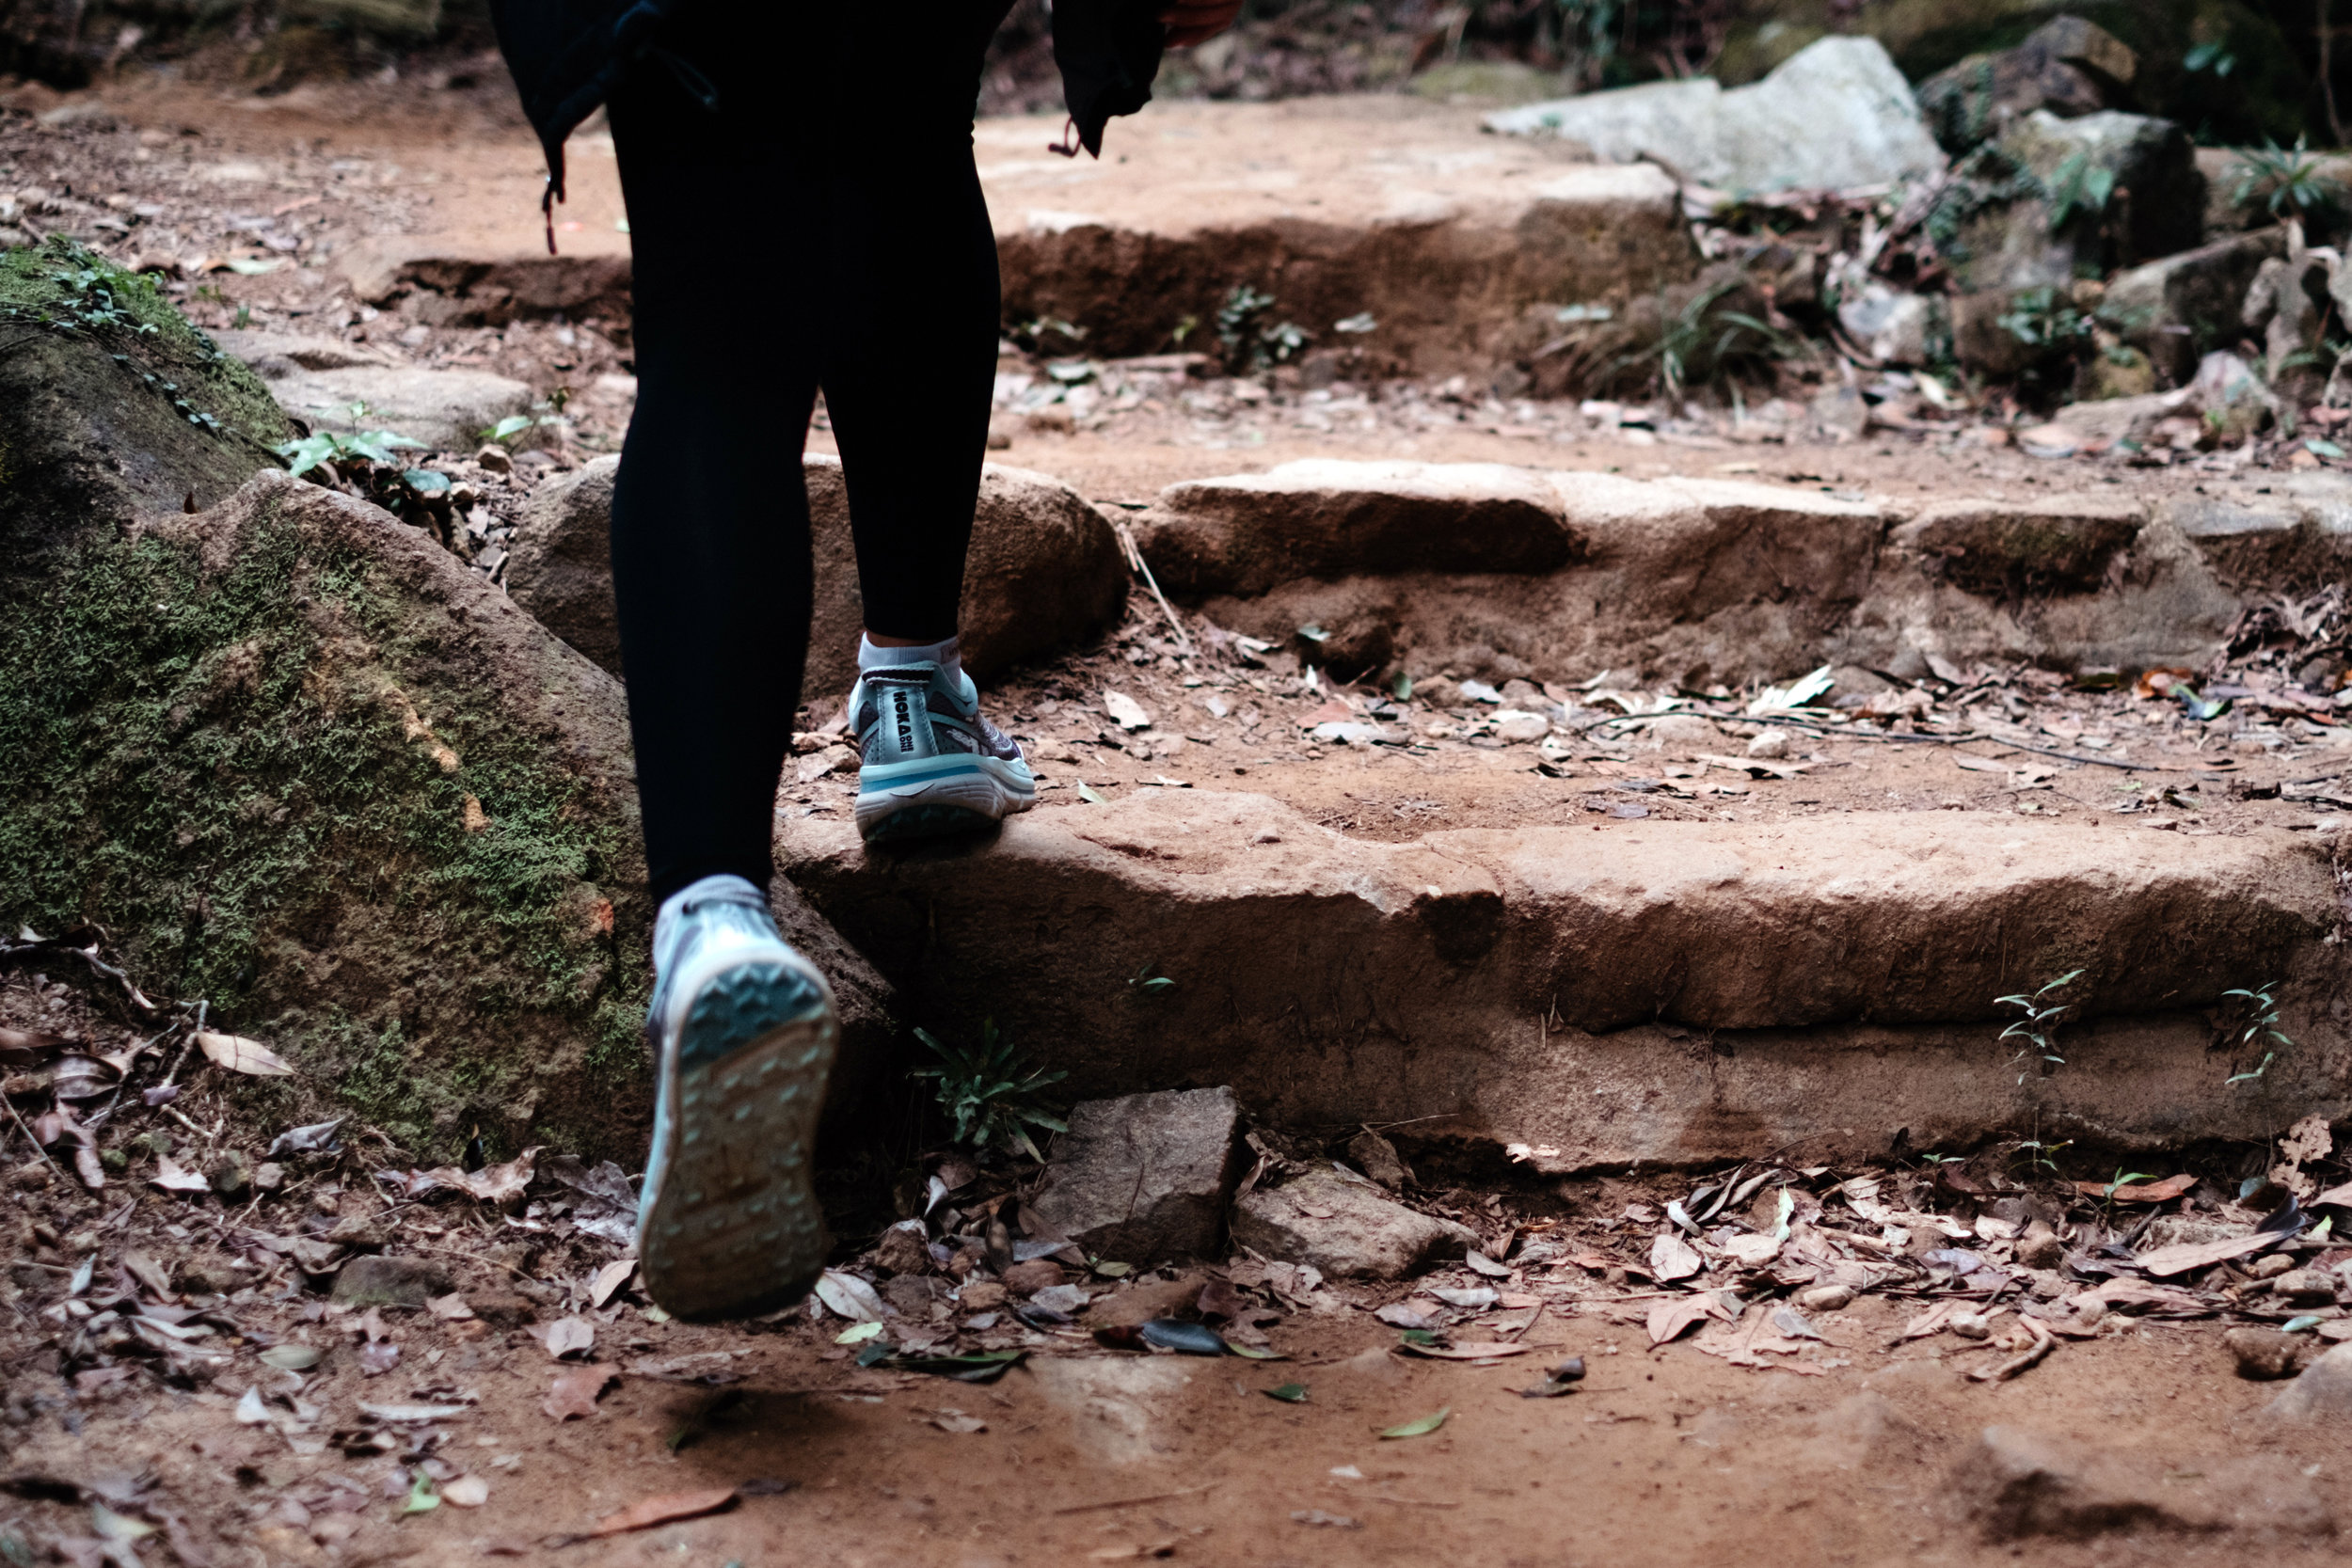 A woman approach the stairs during a hike at the Dragon's Back Trail in Hong Kong